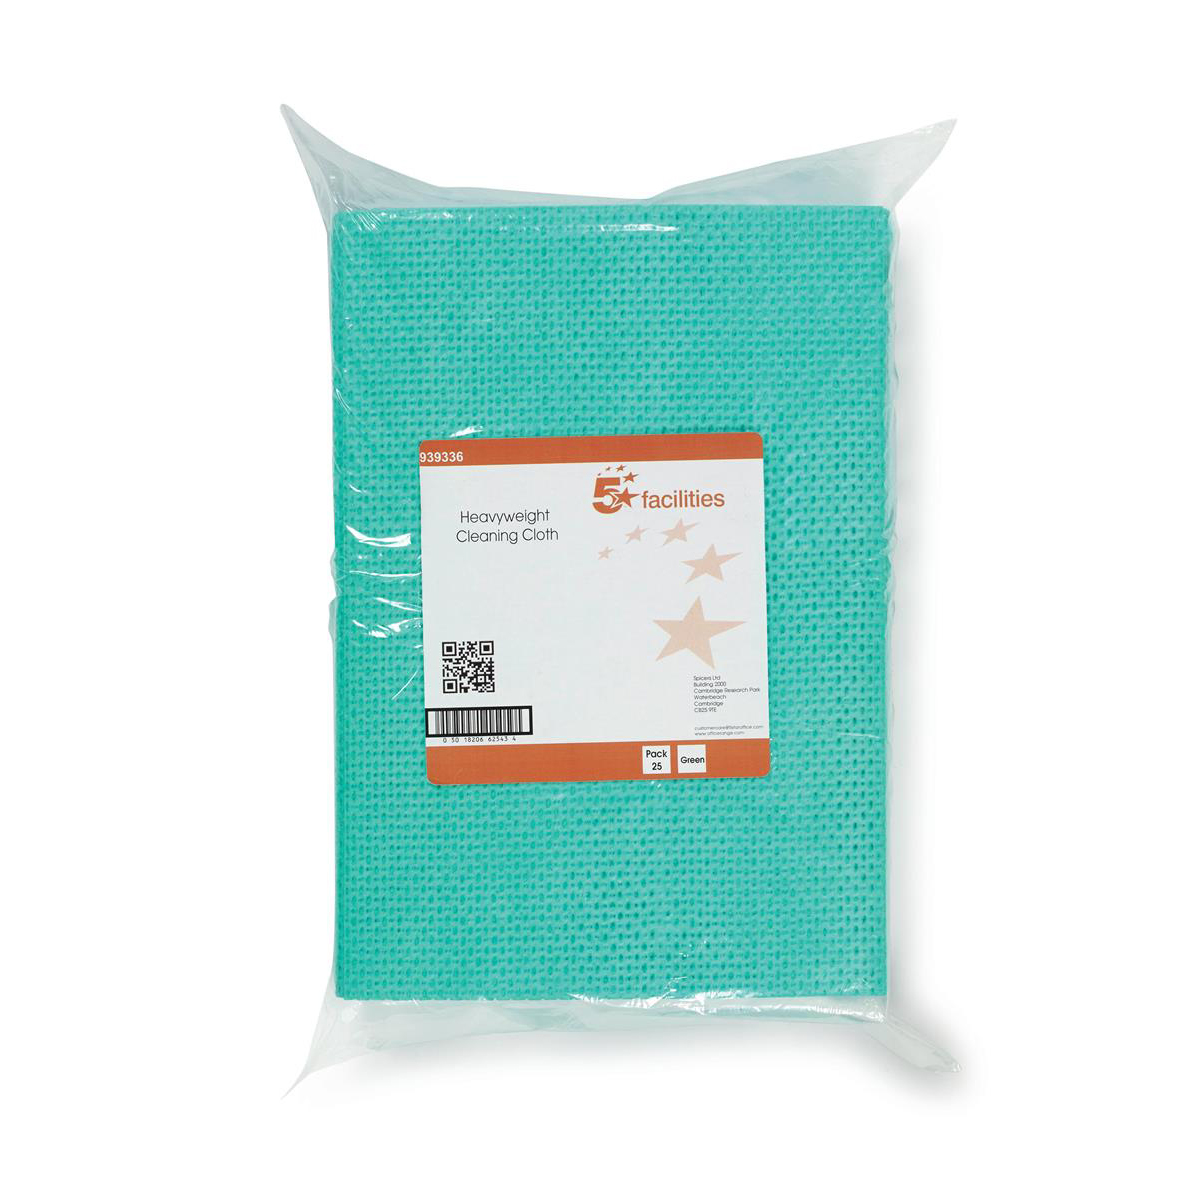 Cleaning Chemicals 5 Star Facilities Cleaning Cloths Anti-microbial Heavy-duty 76gsm W500xL300mm Green Pack 25